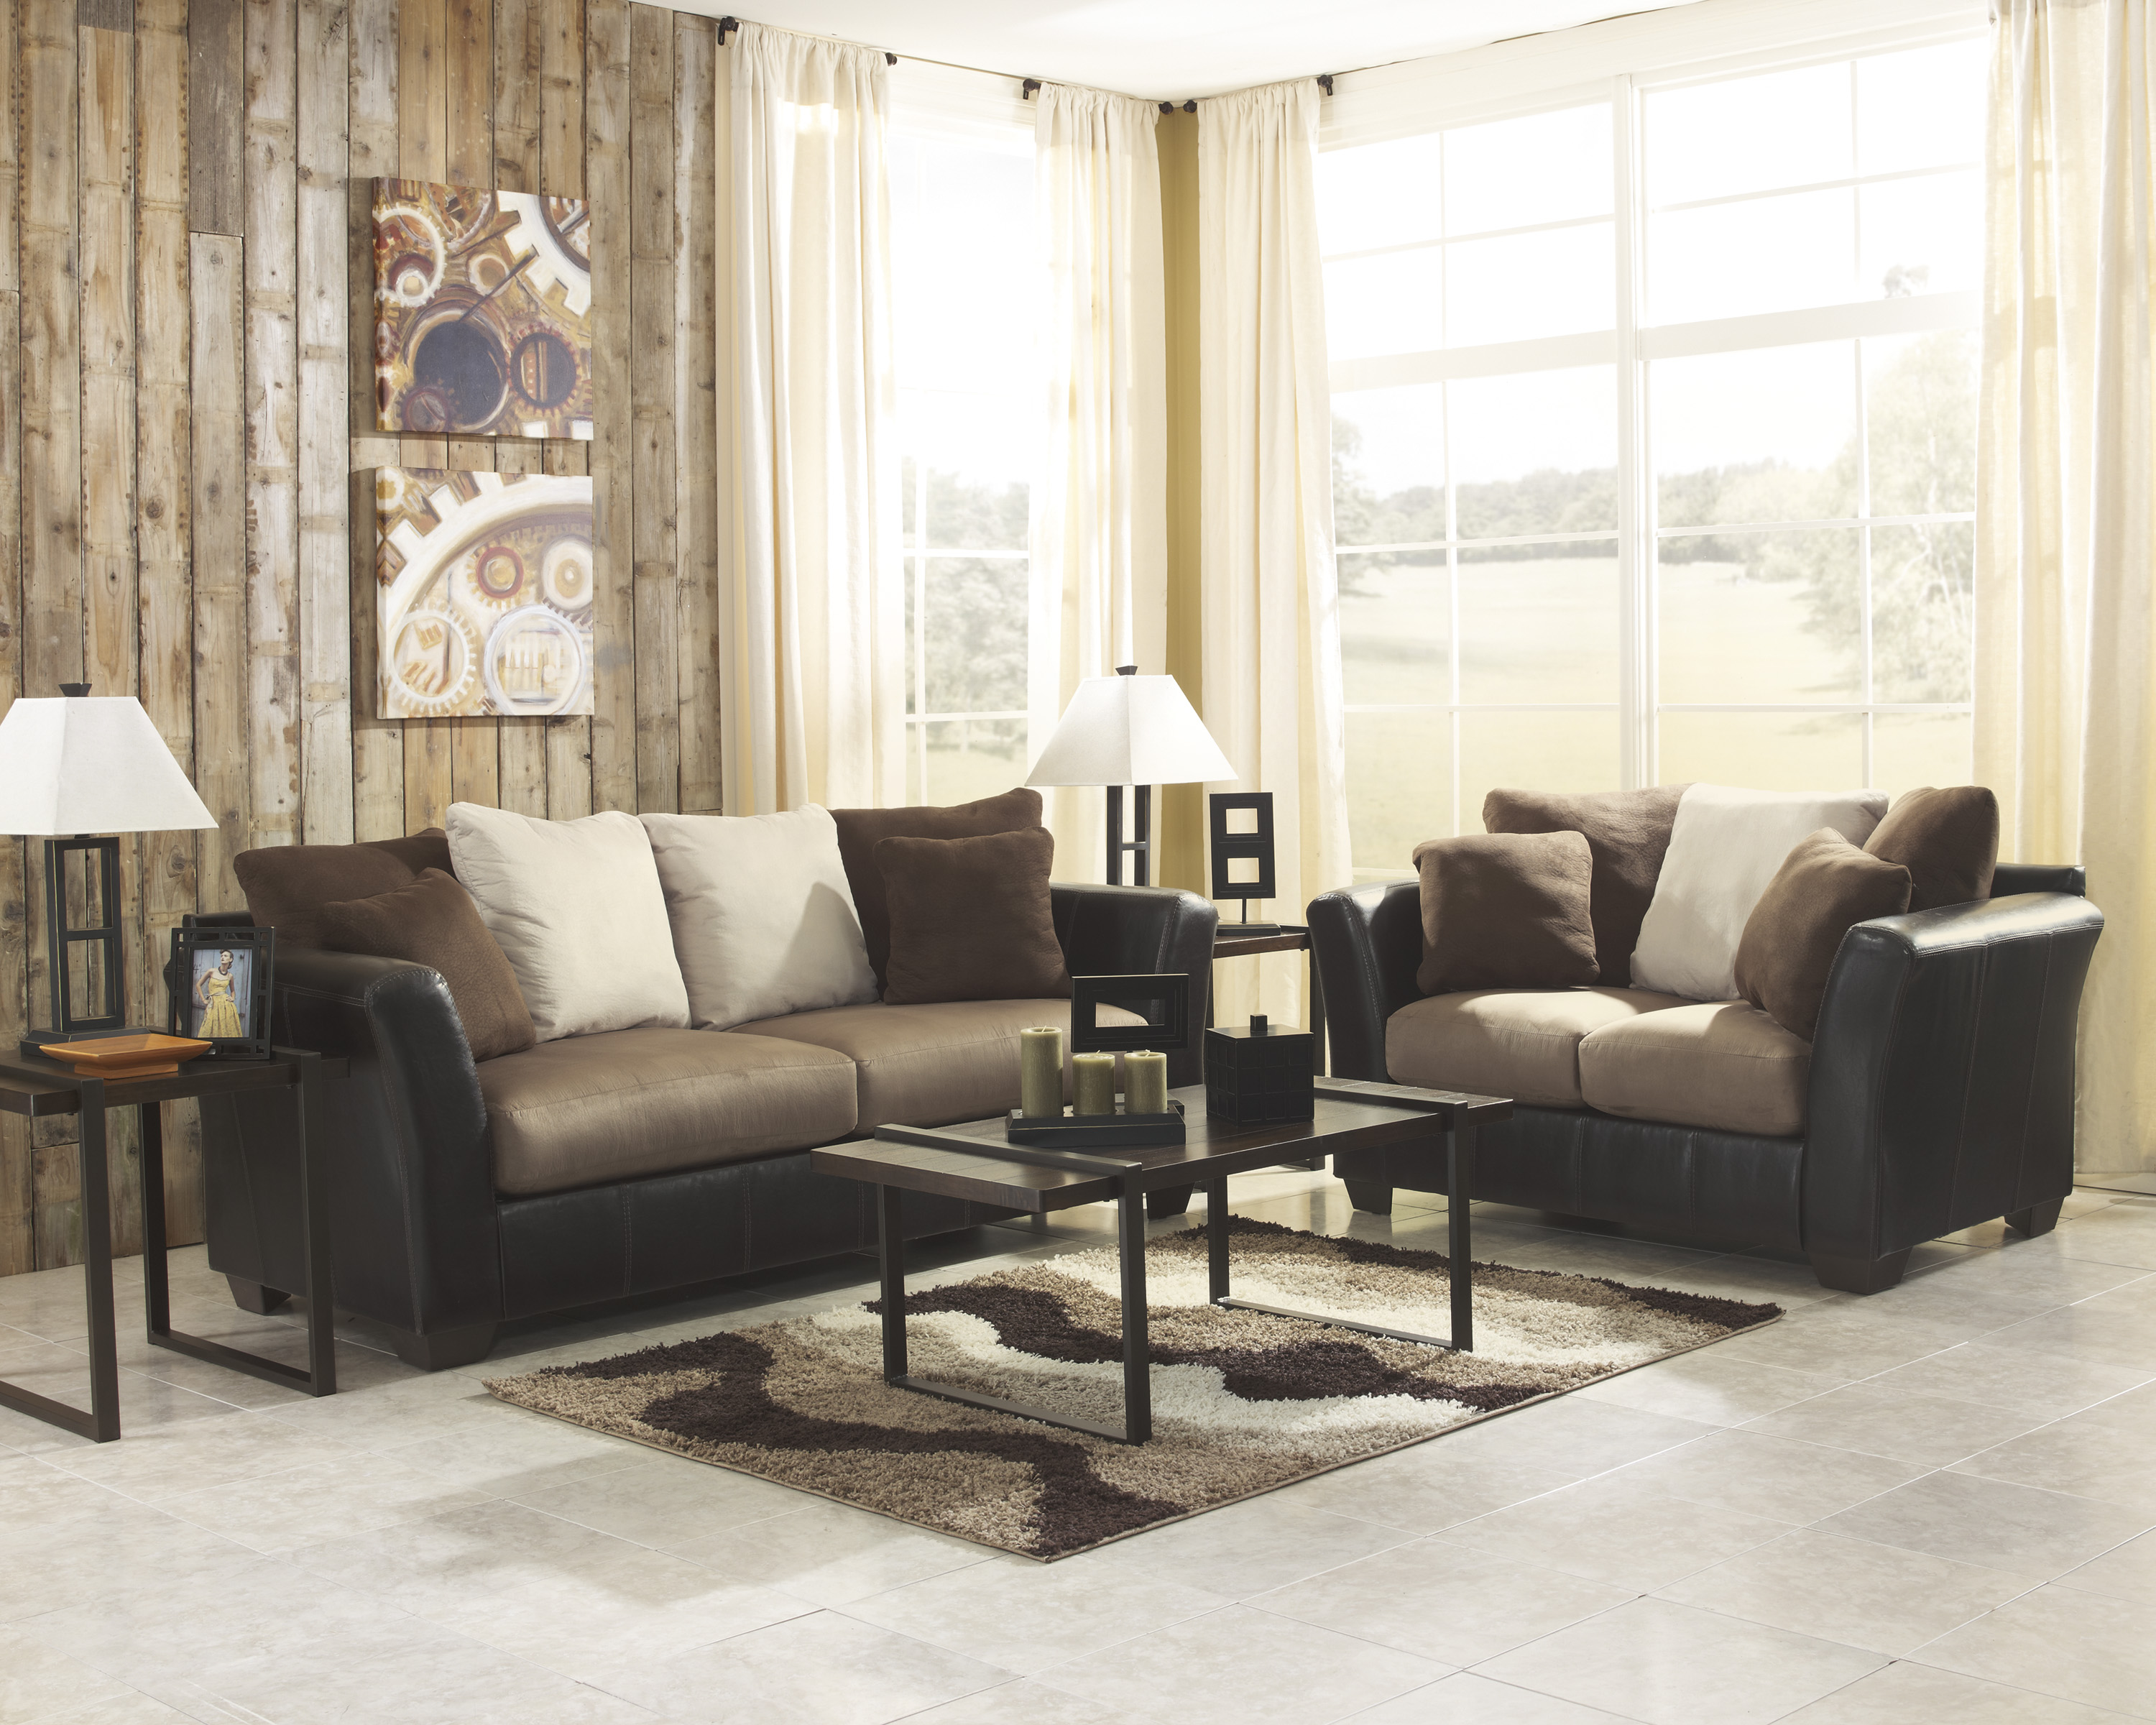 Living Room Design Fantastic Ashley Furniture Tucson For Home